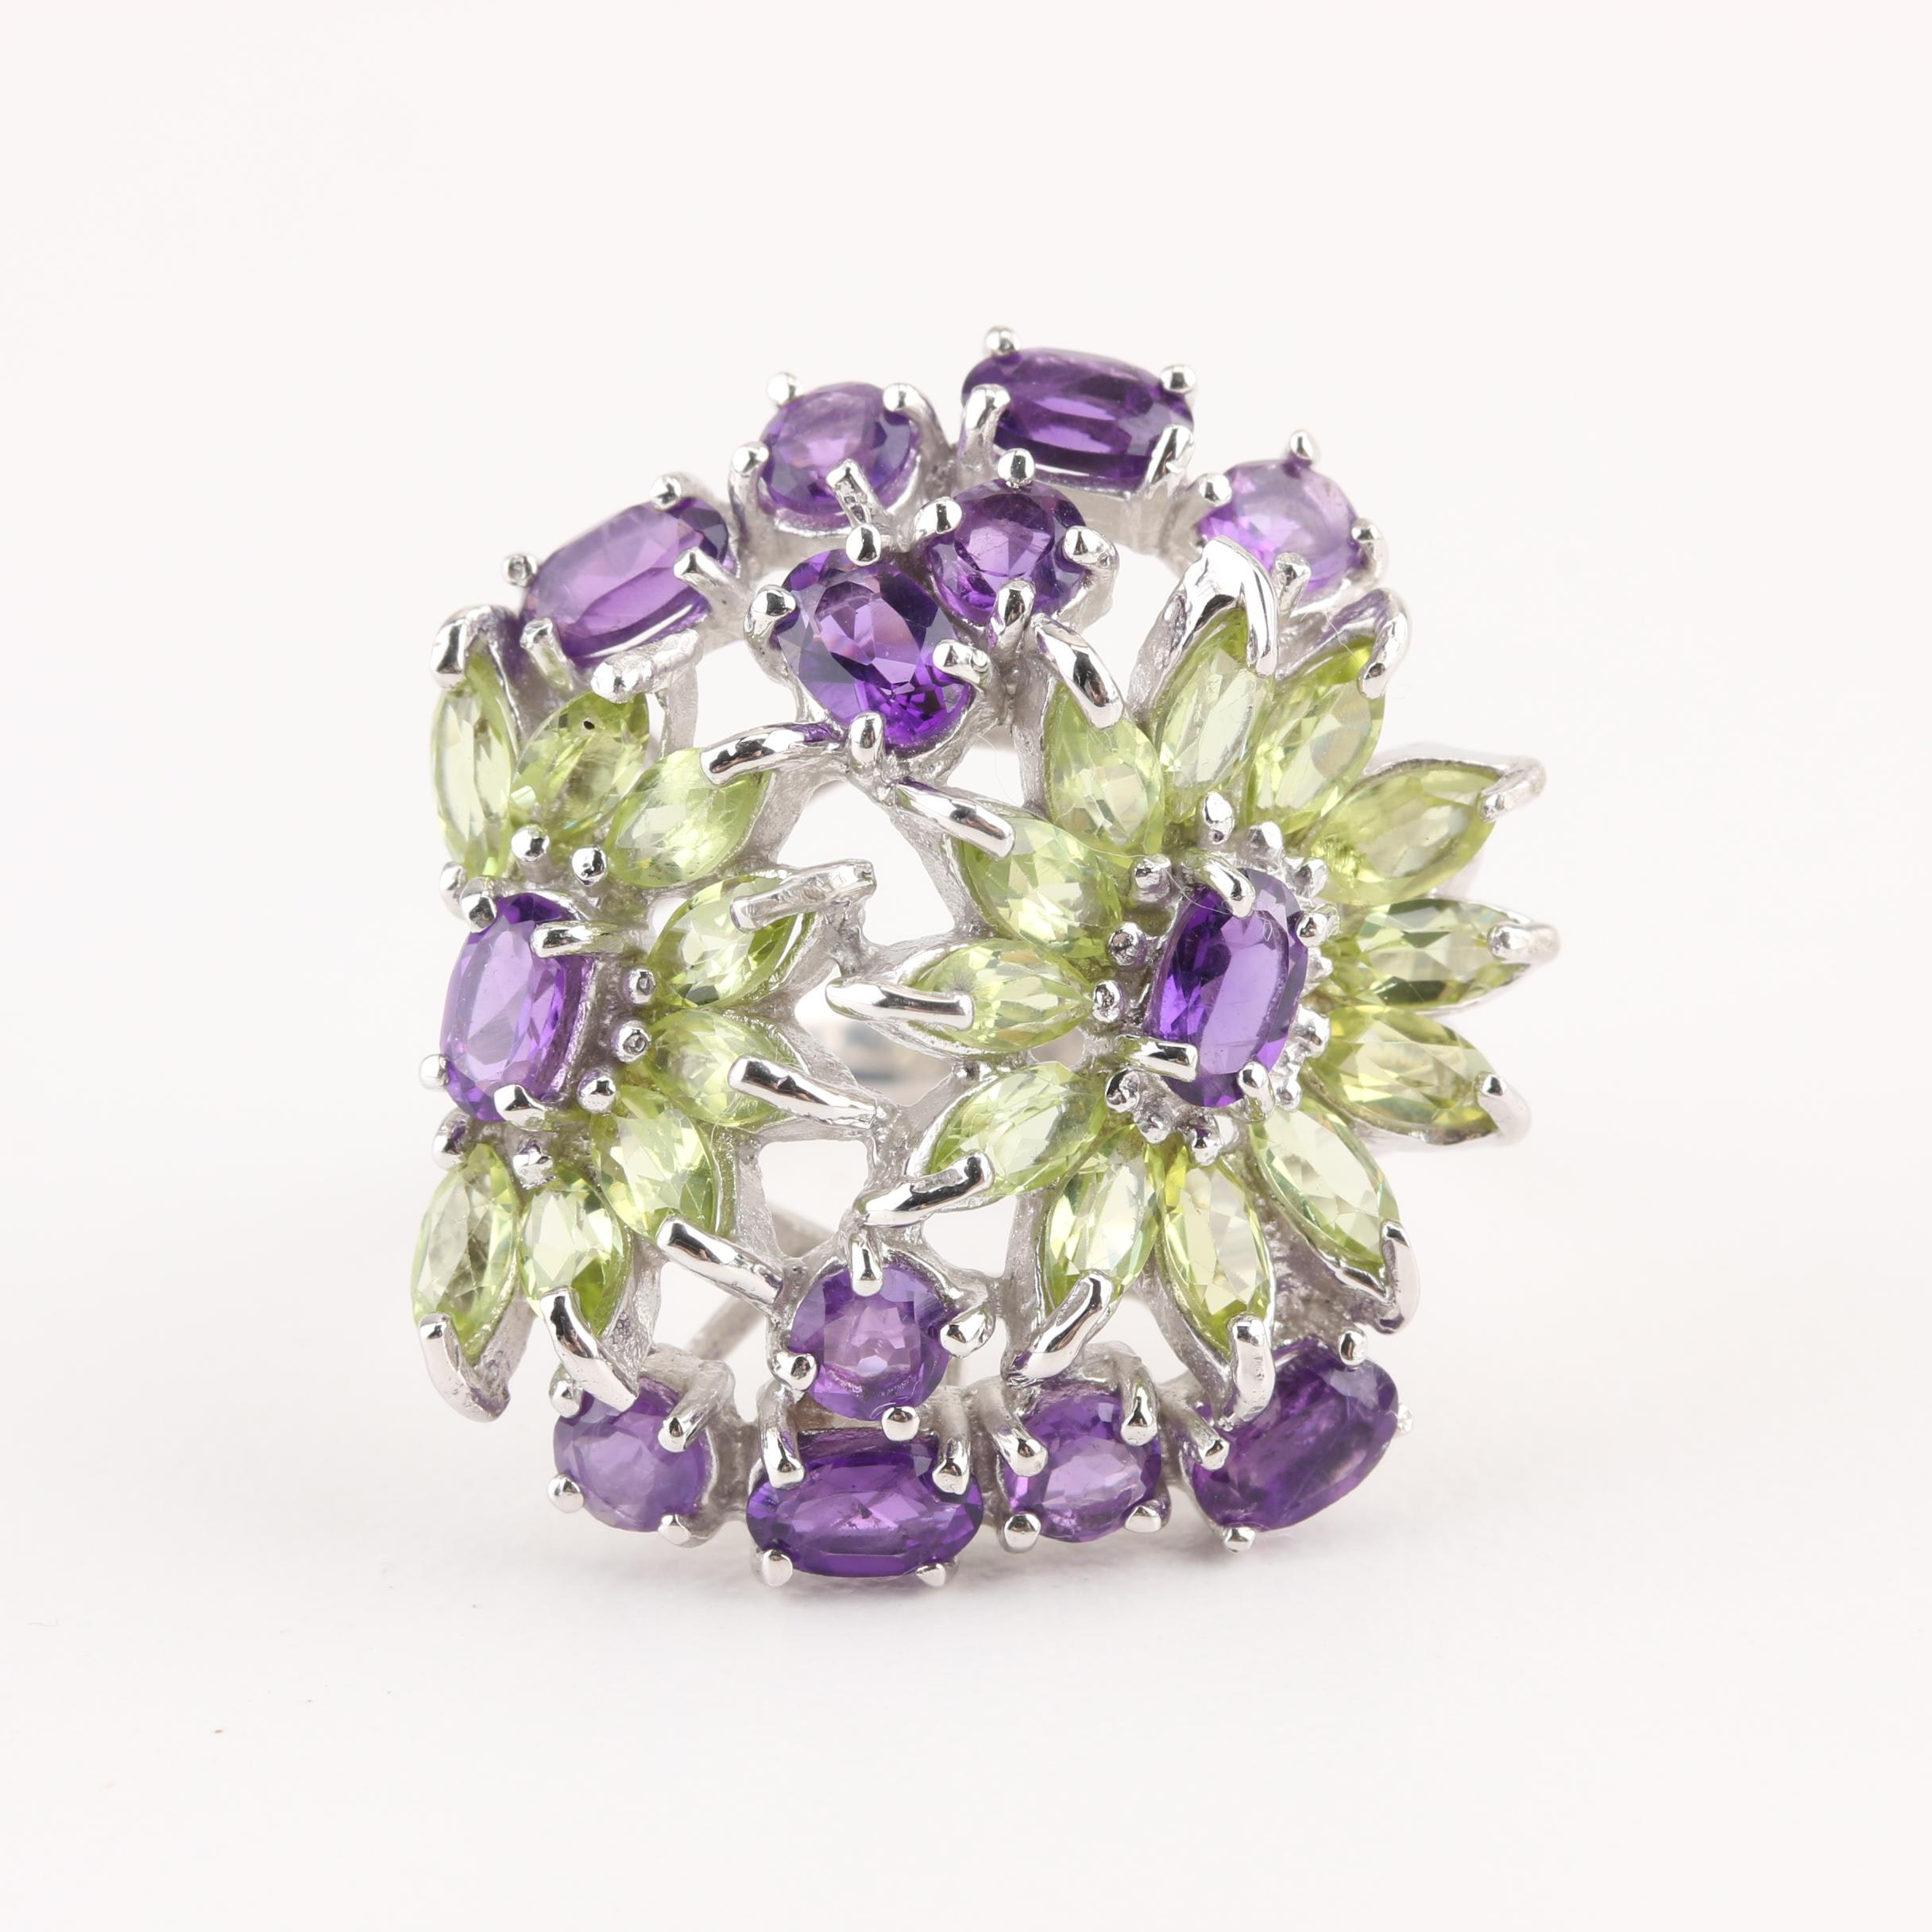 Sterling Silver Amethyst and Quartz Floral Motif Ring